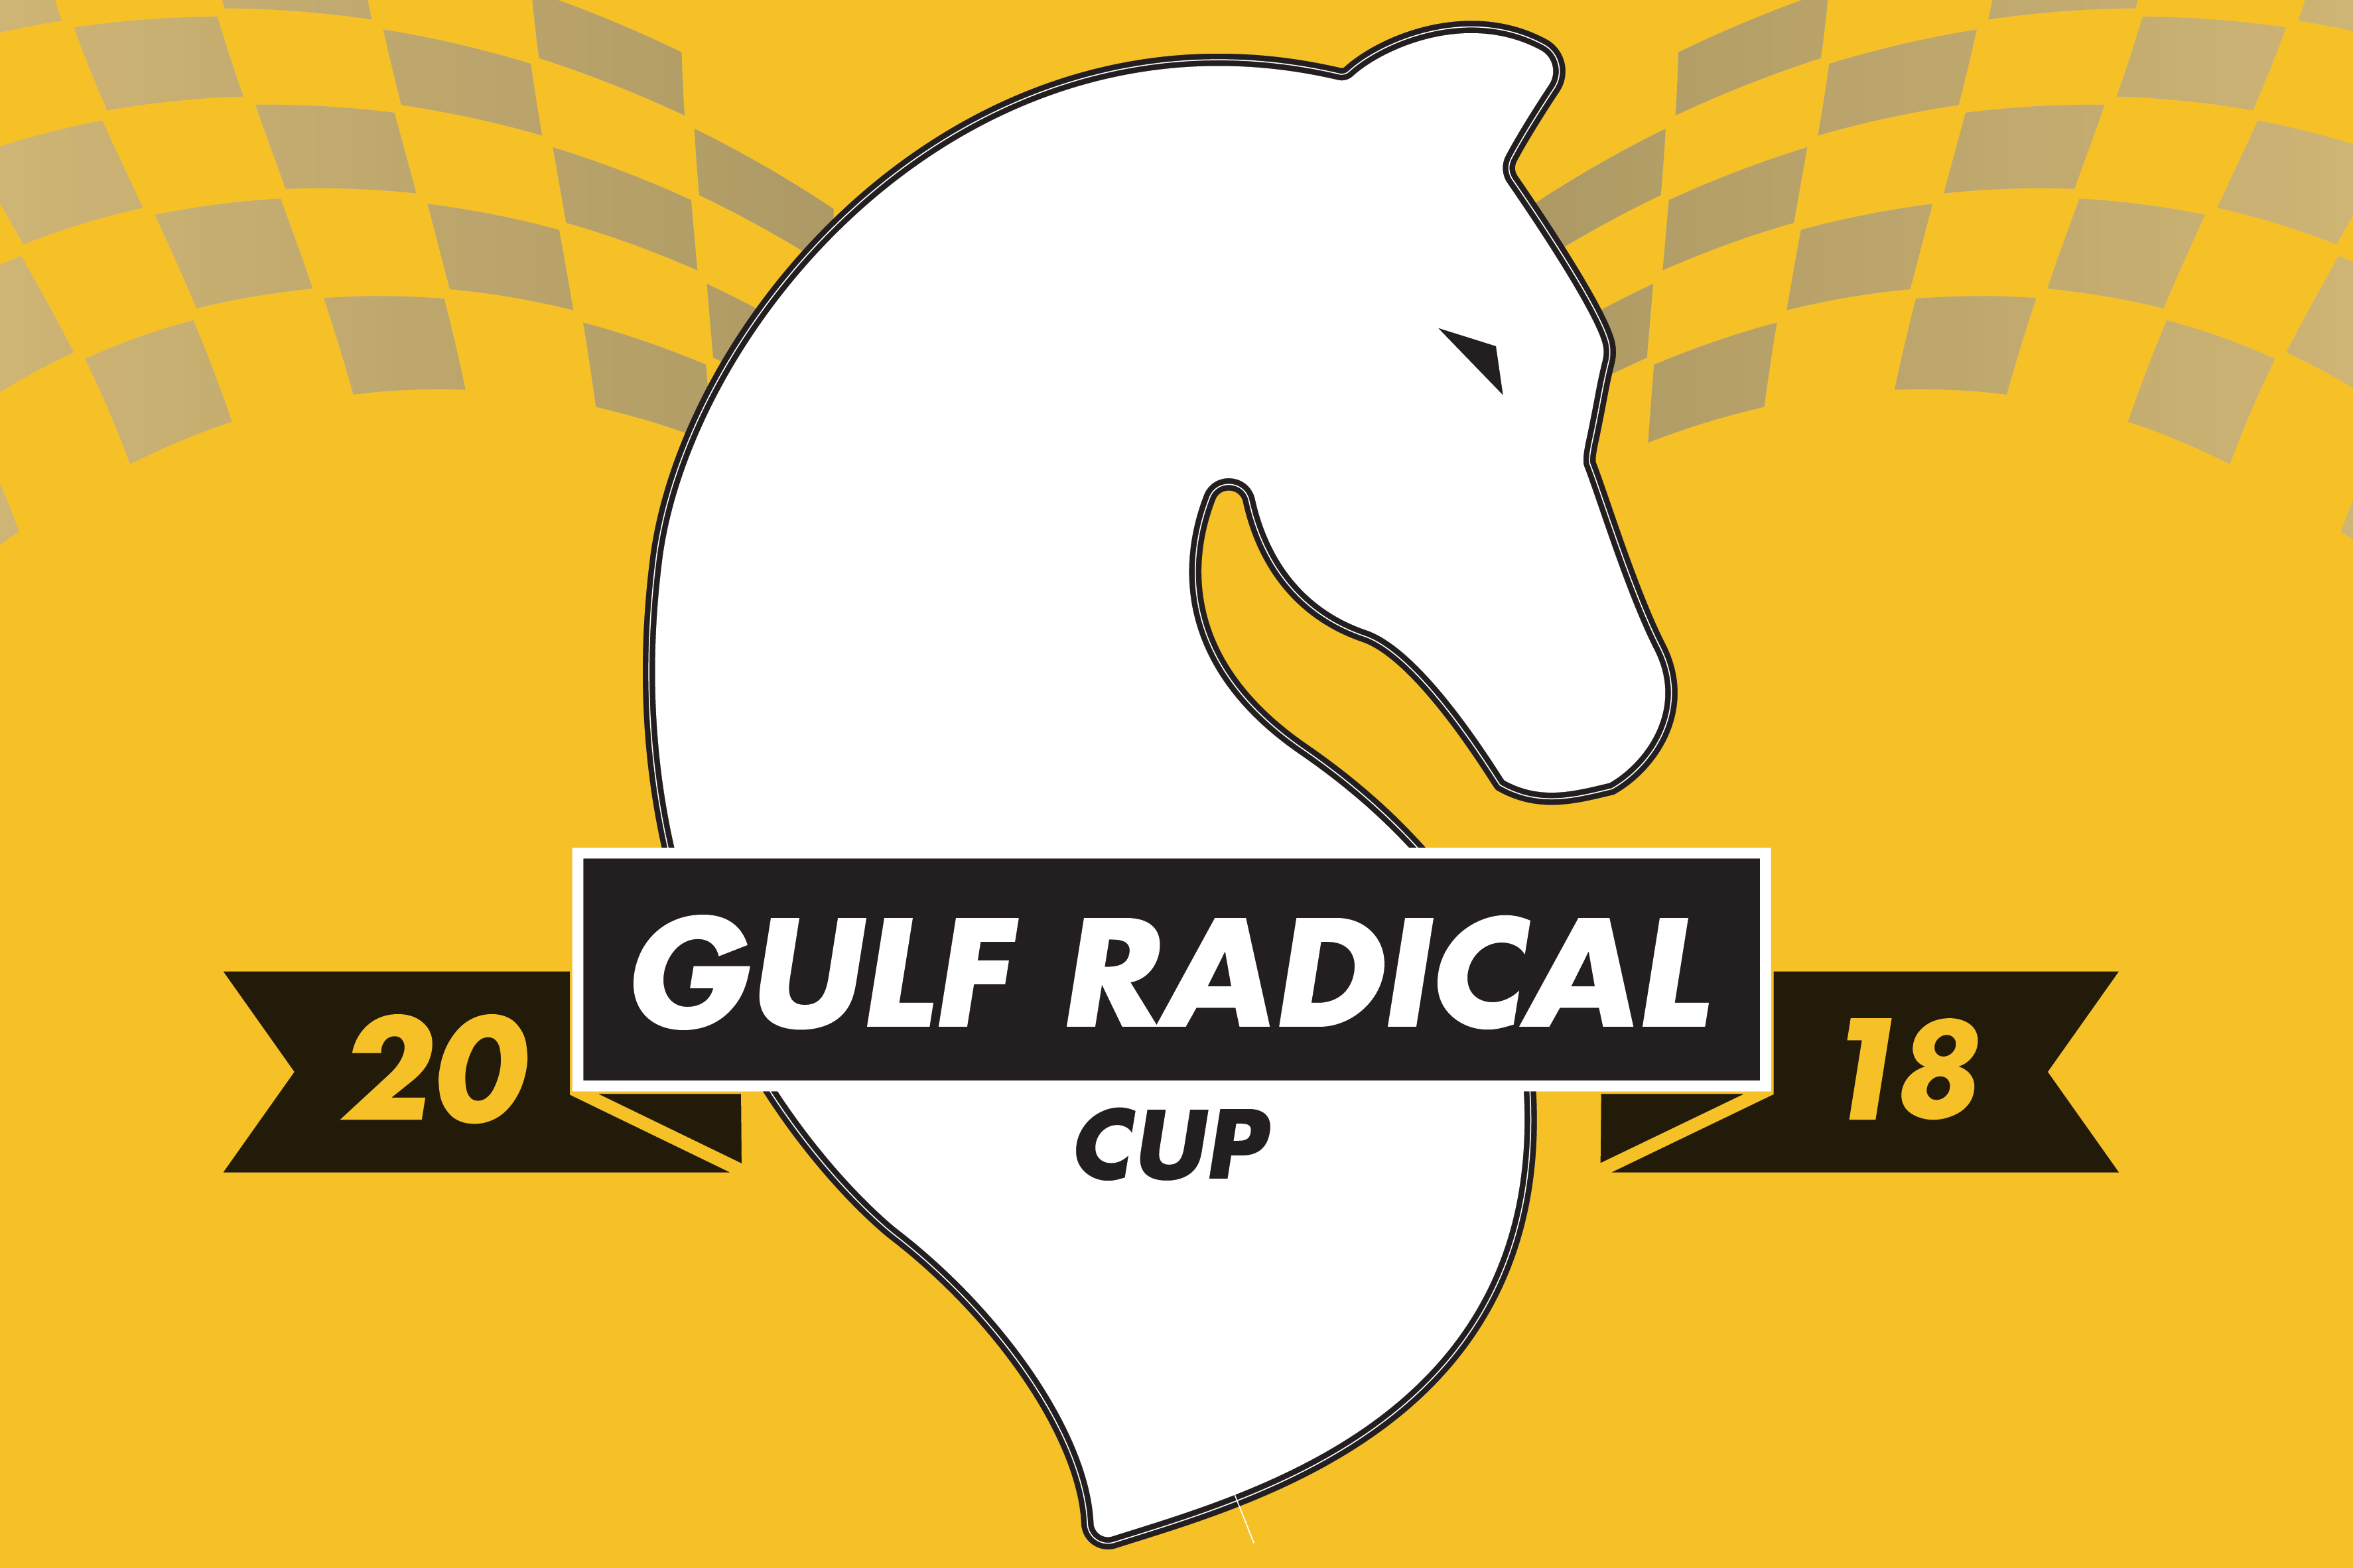 Gulf Radical Cup Returns To The United Arab Emirates